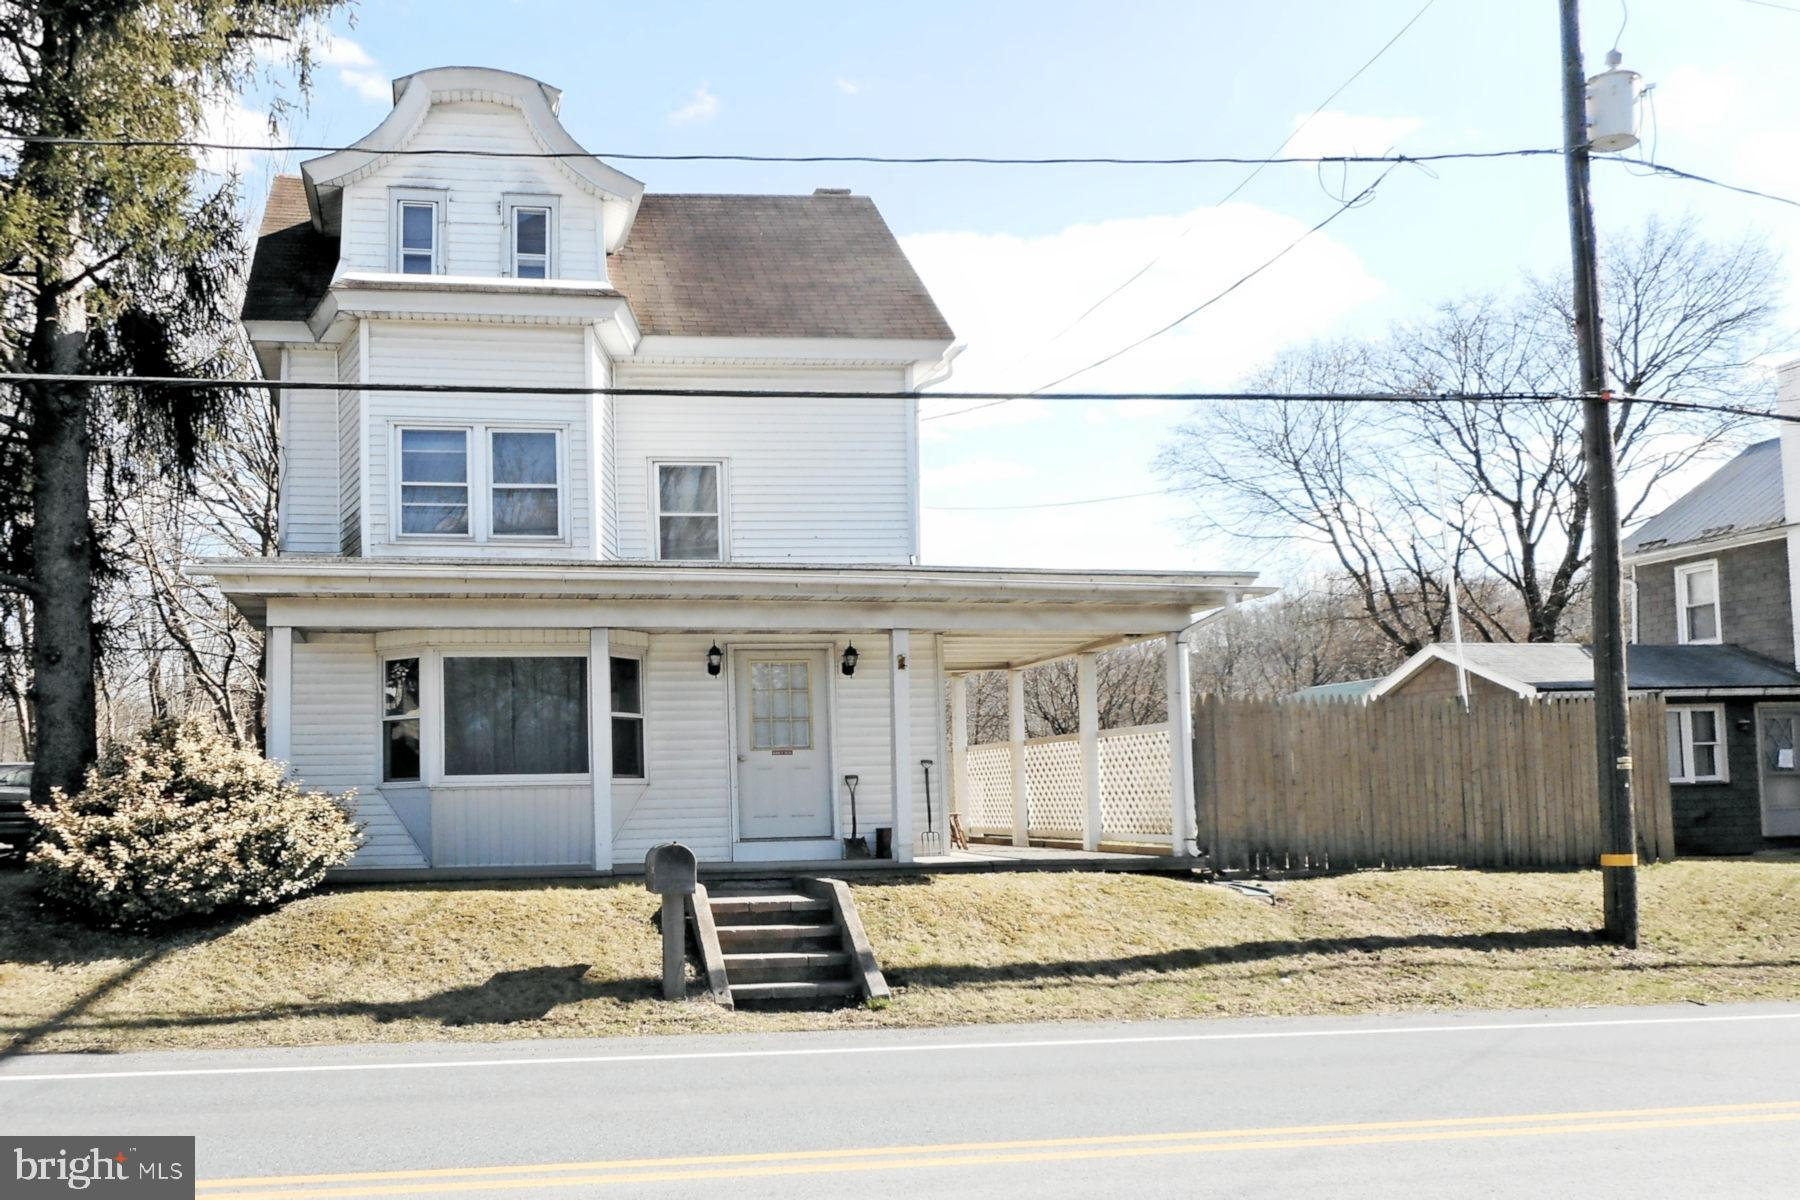 154 PLEASANT VALLEY ROAD, PINE GROVE, PA 17963